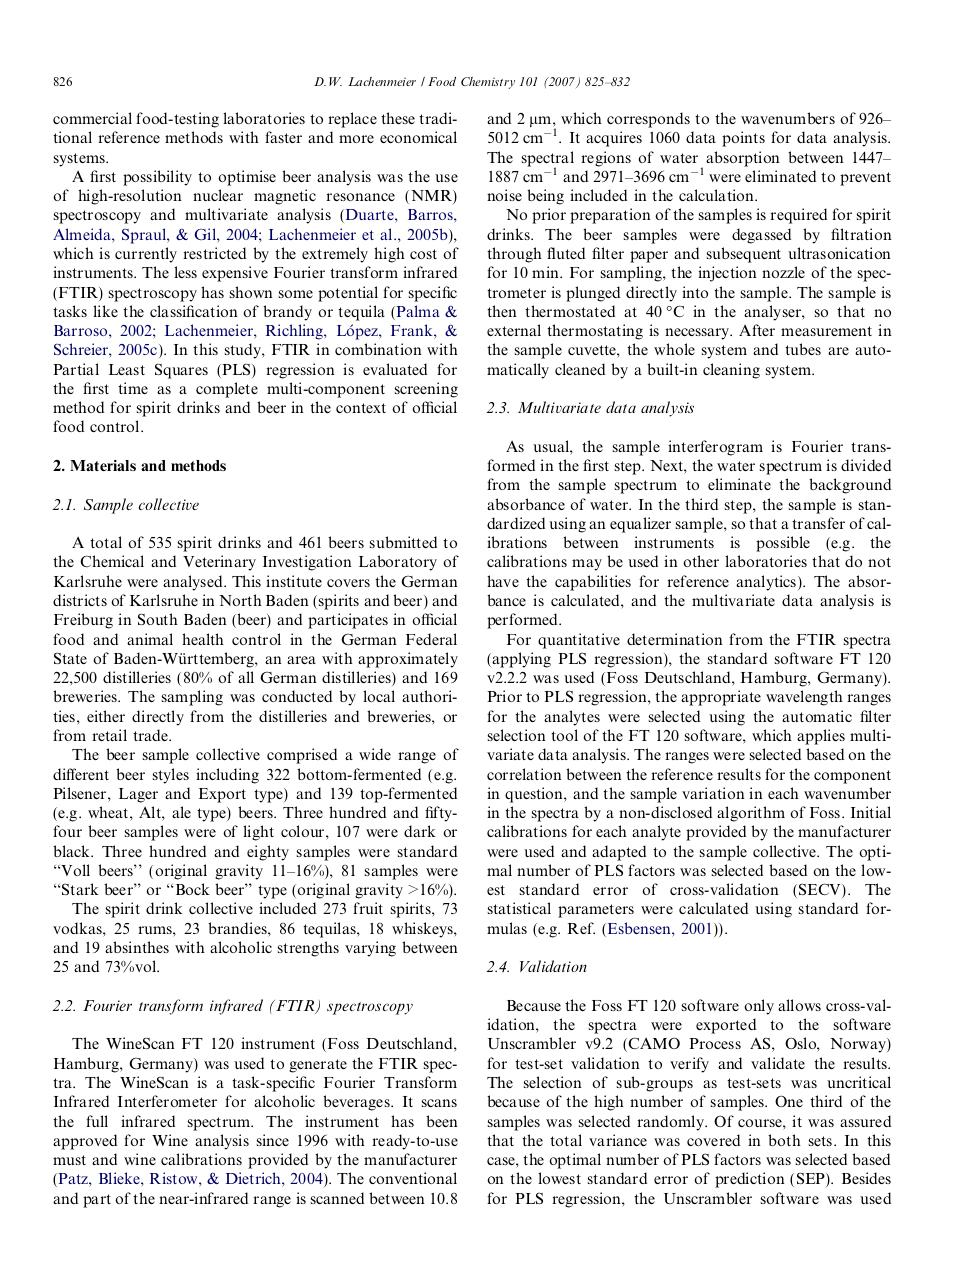 Rapid quality control of spirit drinks and beer using FTIR.pdf - page 2/8